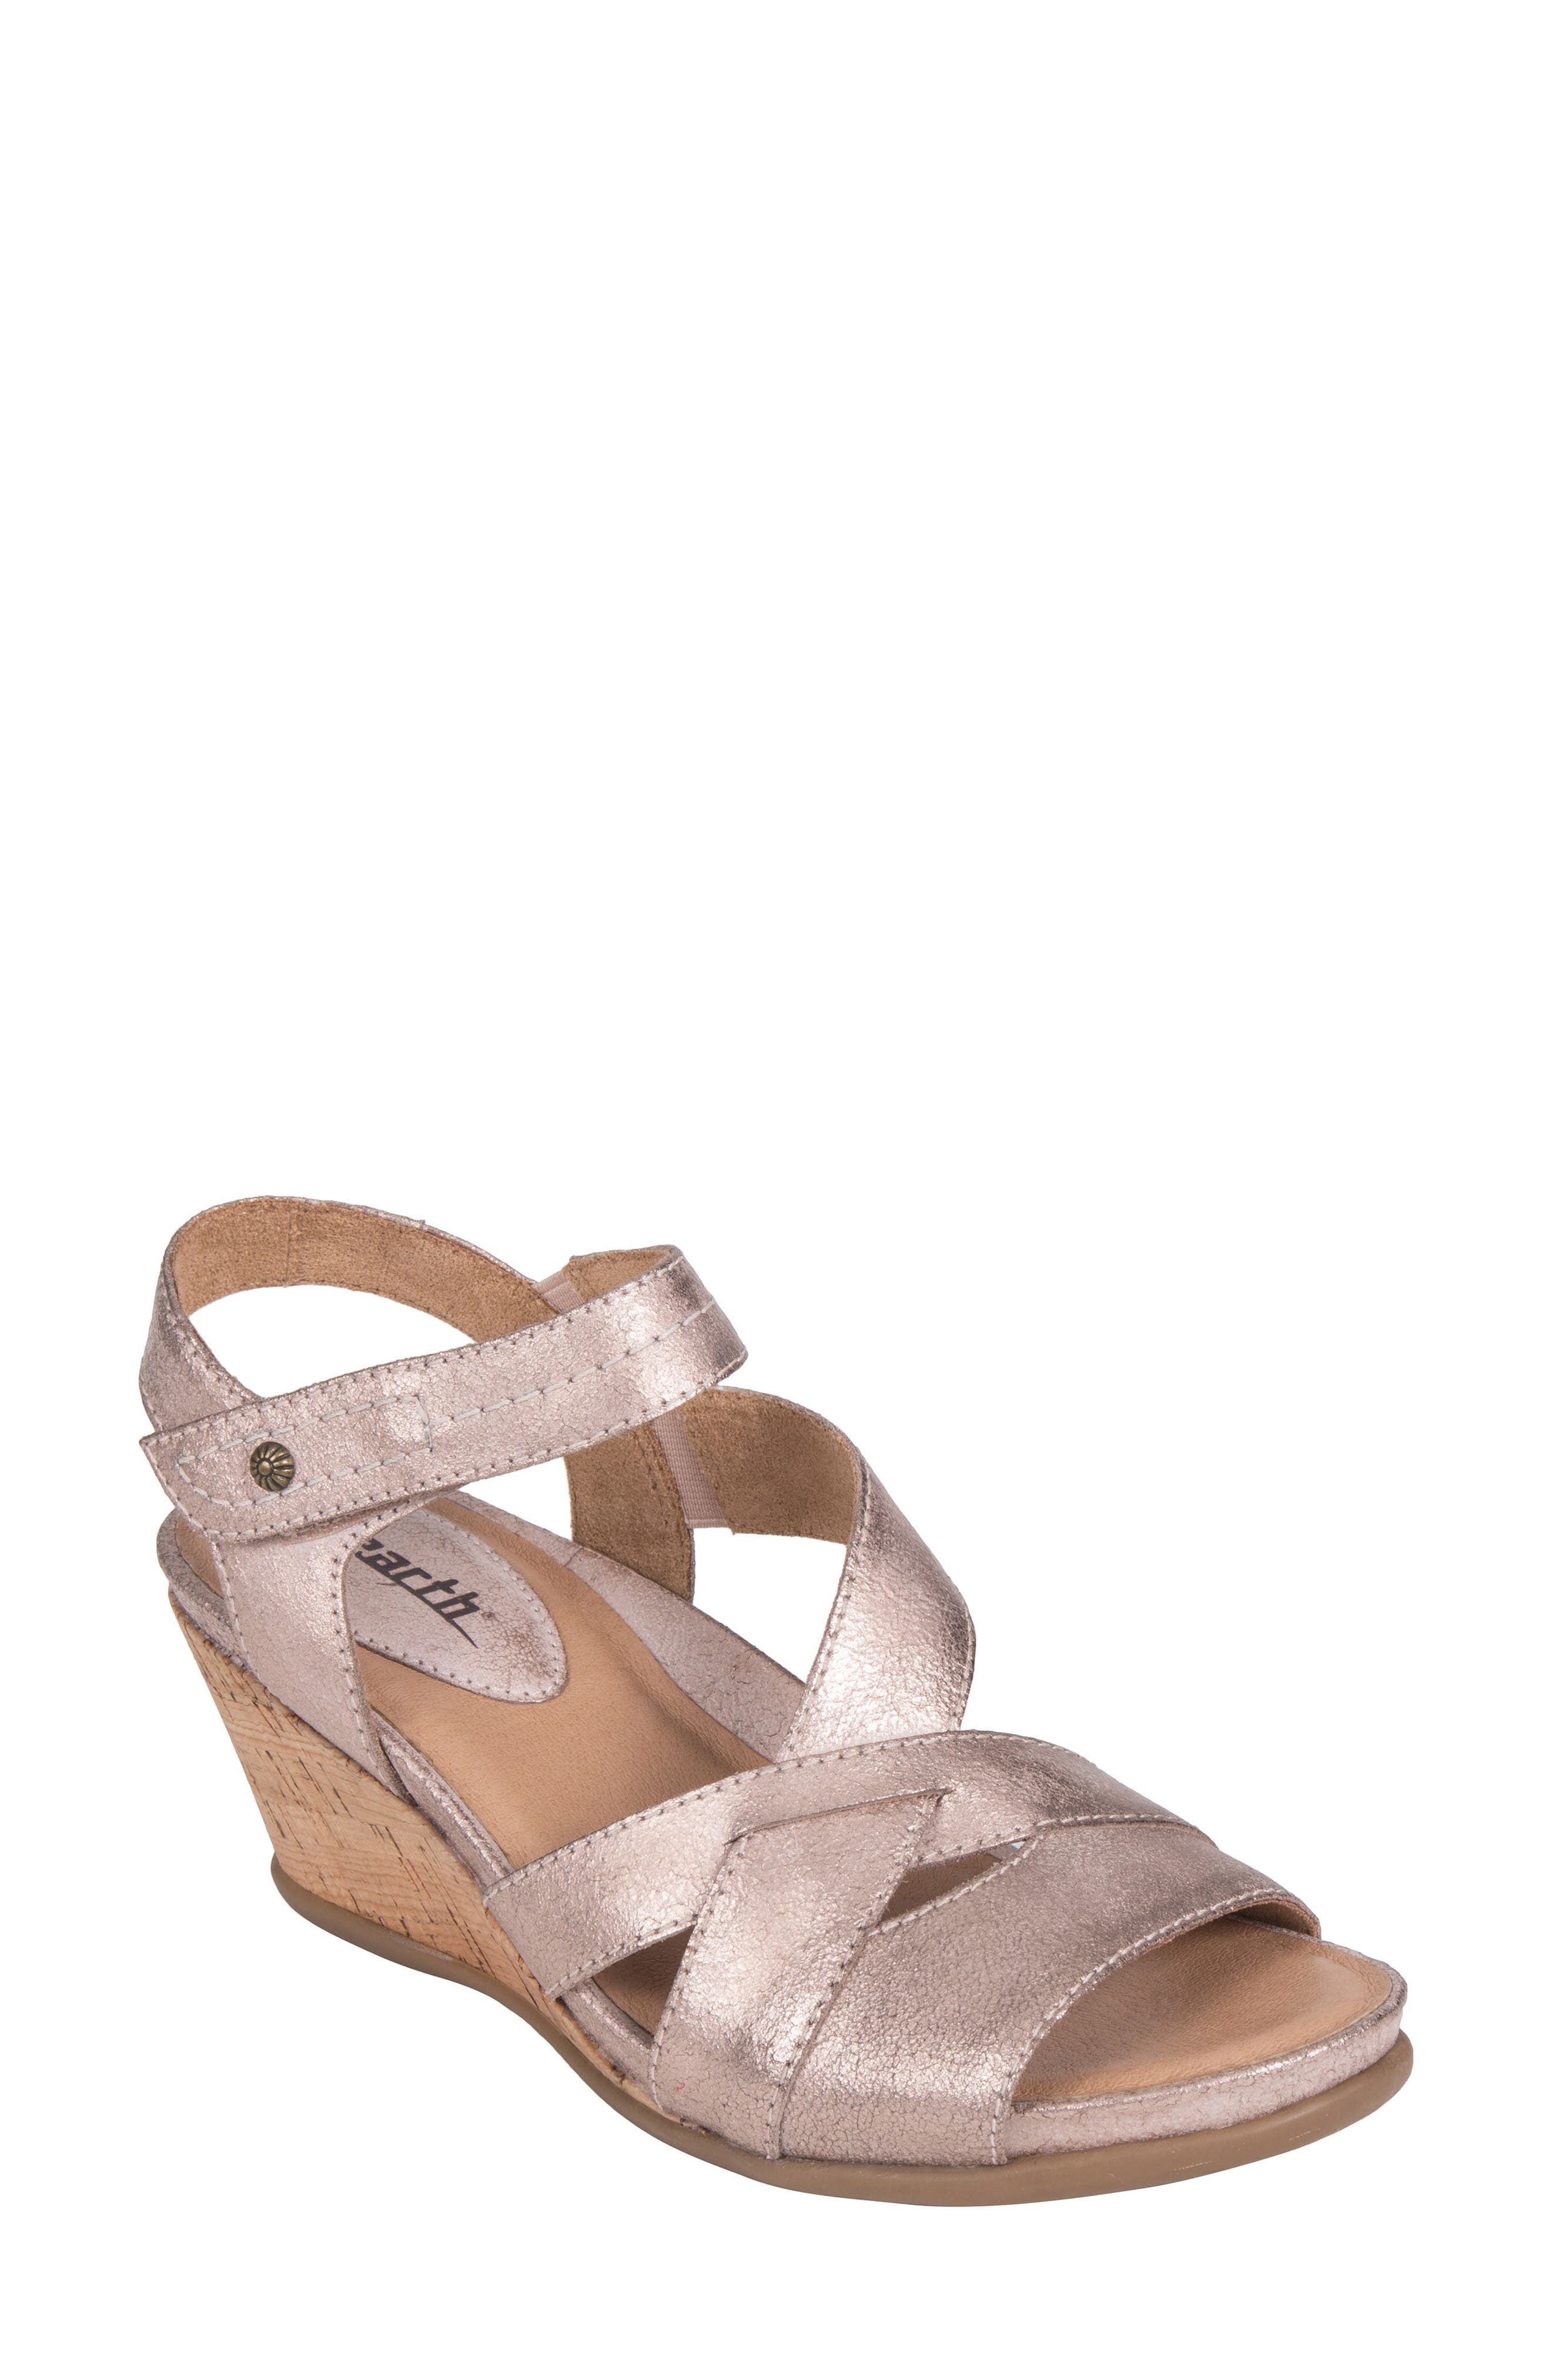 Thistle Wedge Sandal,                         Main,                         color, Pink Leather